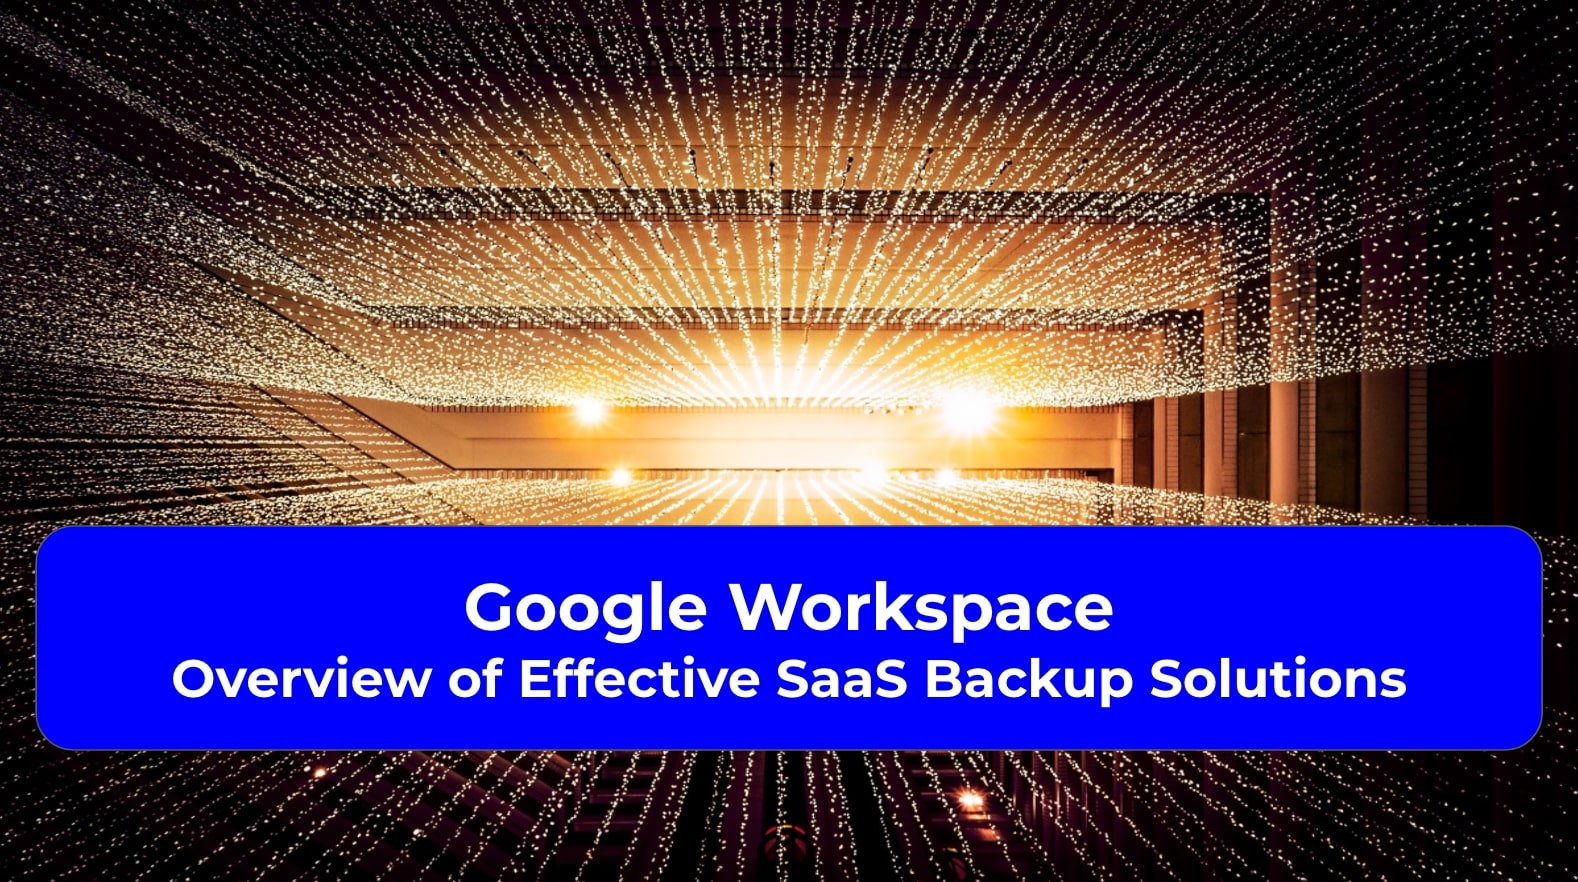 Google Workspace Overview of Effective SaaS Backup Solutions